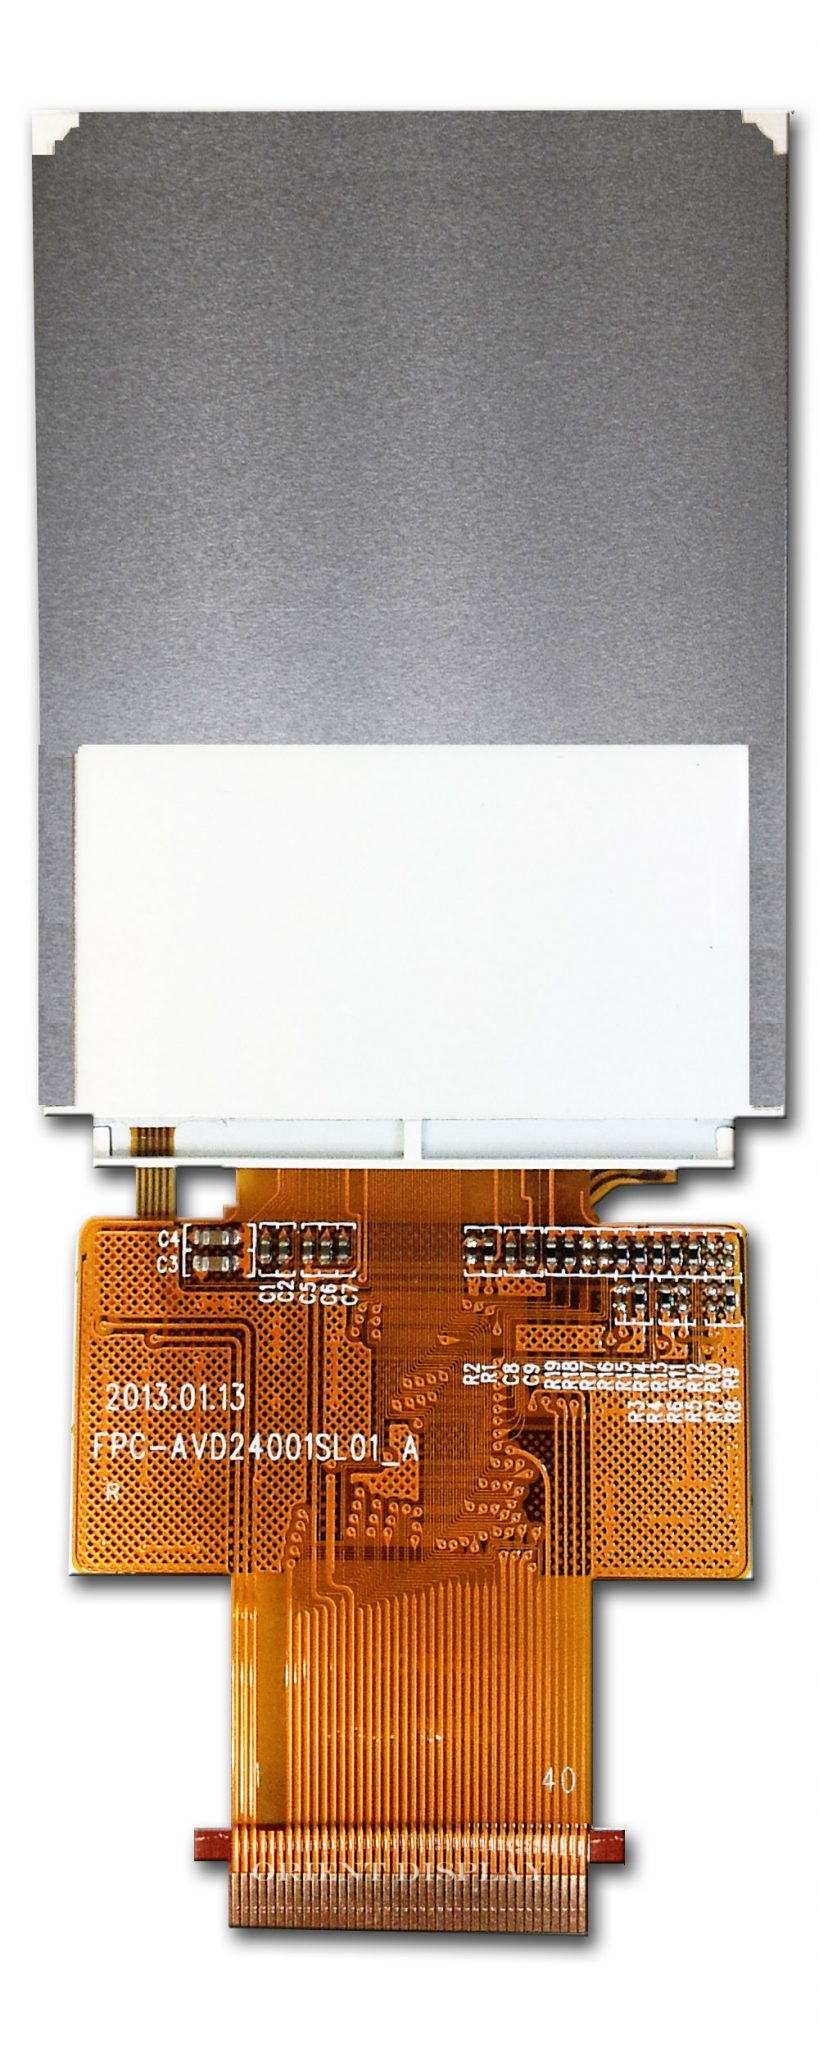 "2.4"" TFT, 240x320, 220 Nits with Resistive Touch Panel"